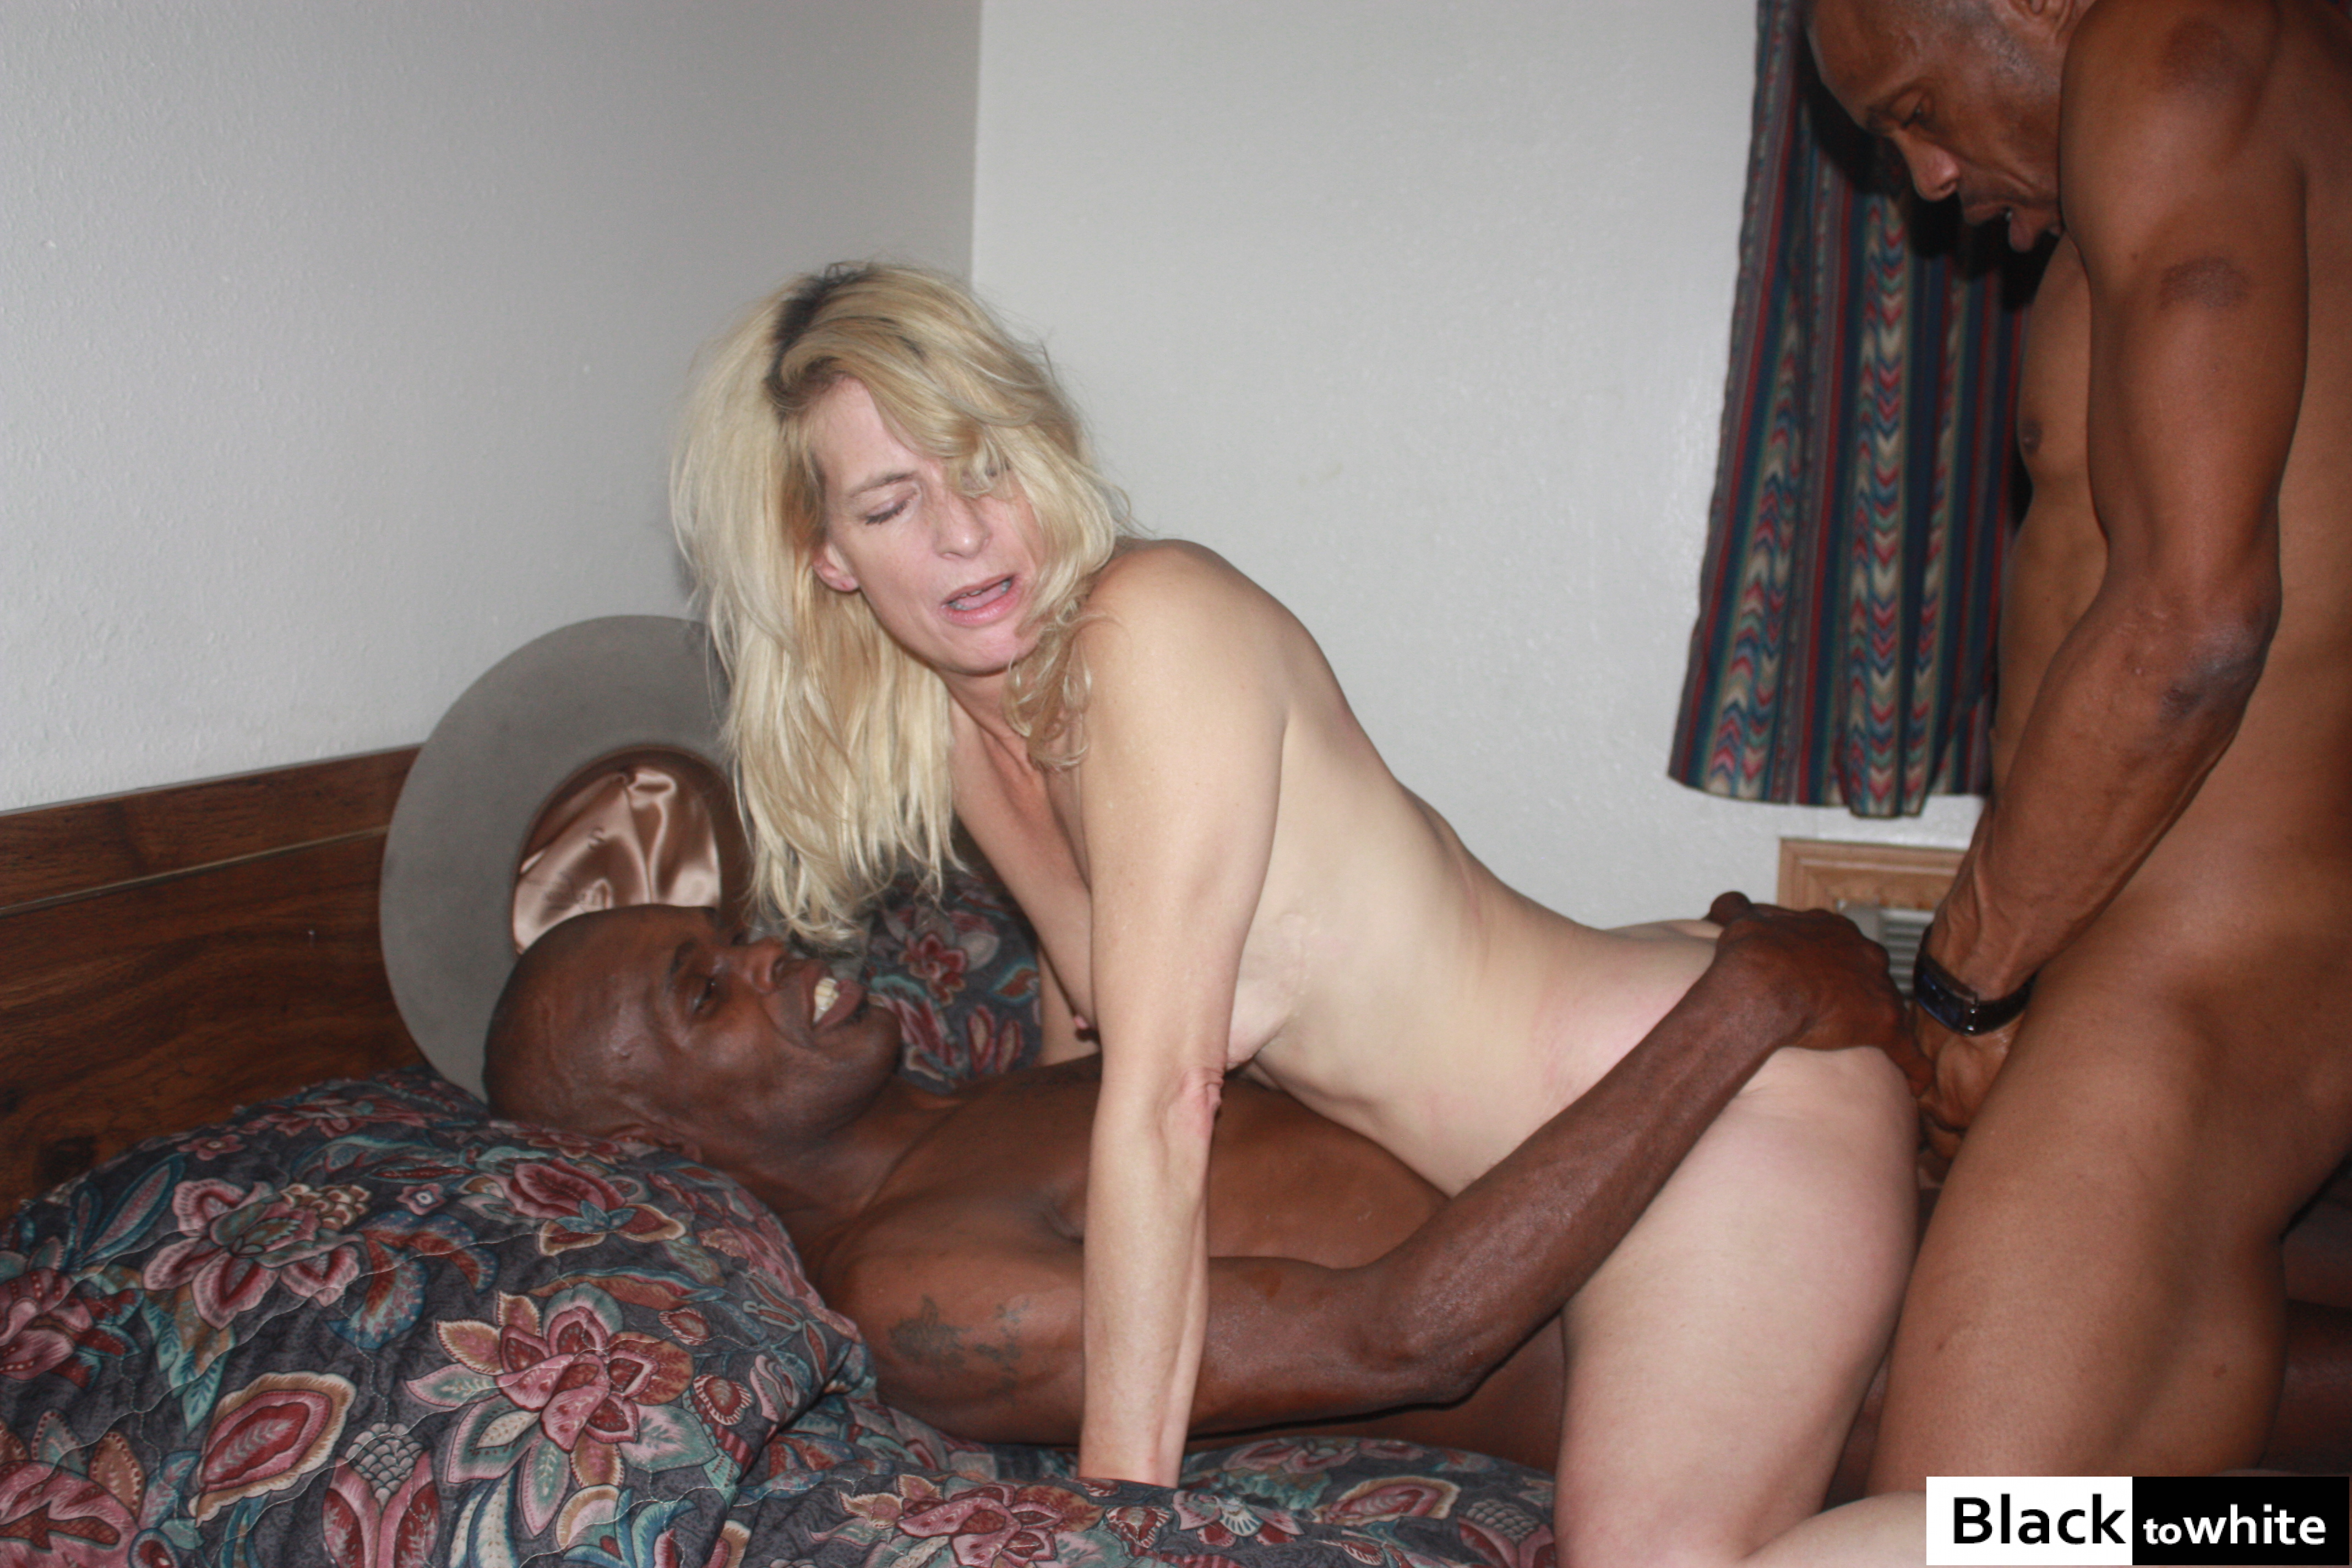 first dp | amateur interracial community - cuckold sex forum